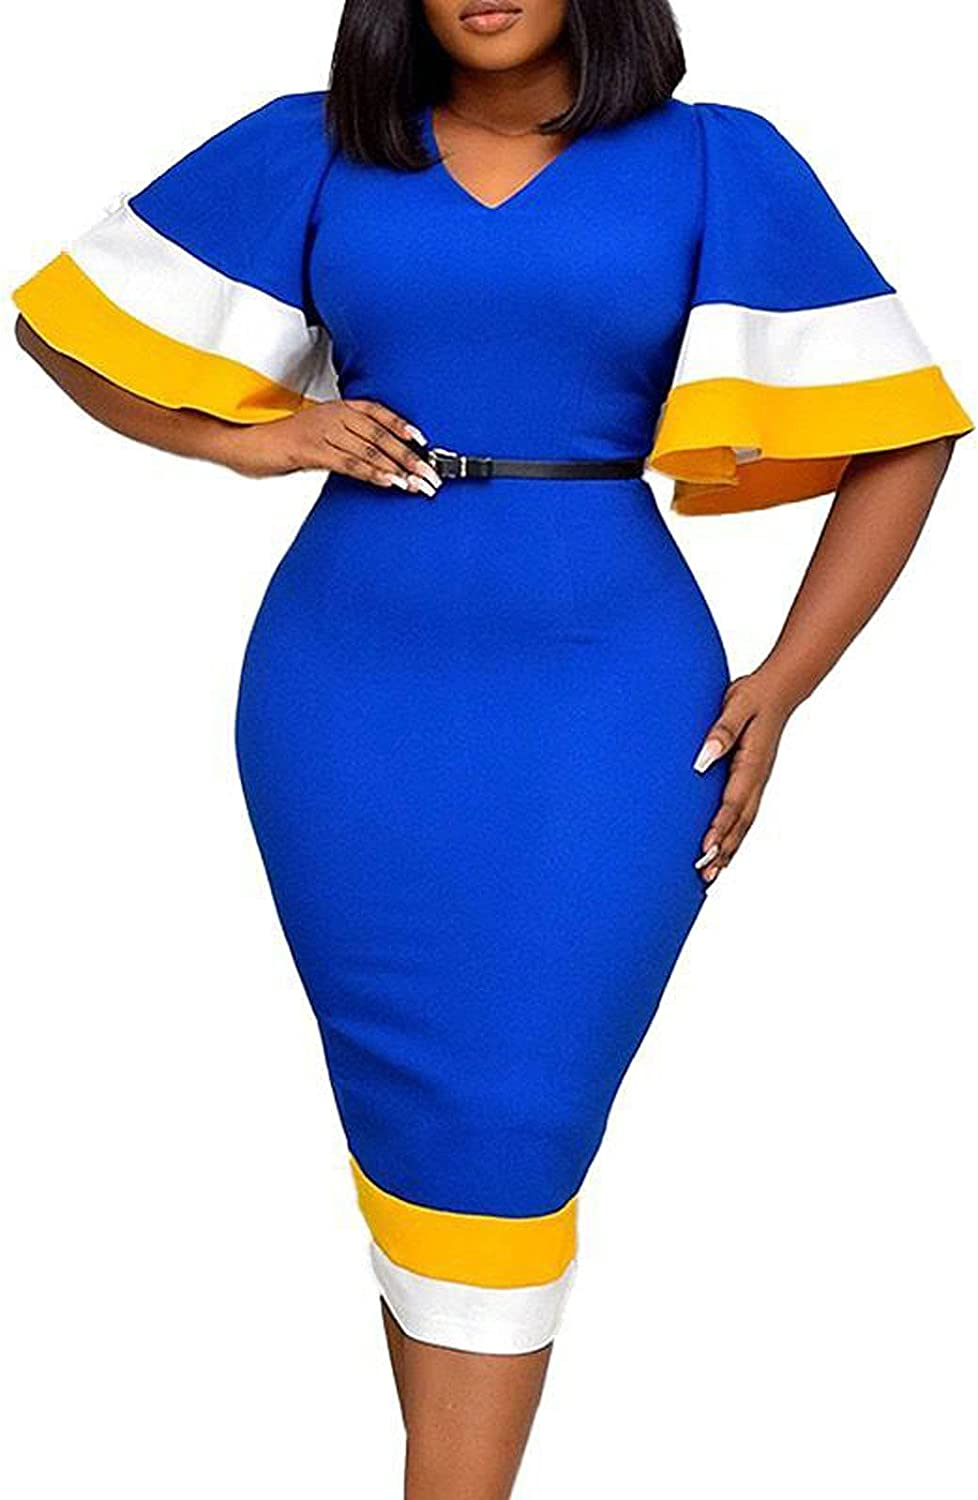 PAPIYON Plus Size Dress for Women Summer Sexy V Neck Flared Sleeves Long Dress Slim Bodycon Pencil Skirt Color Block Dress